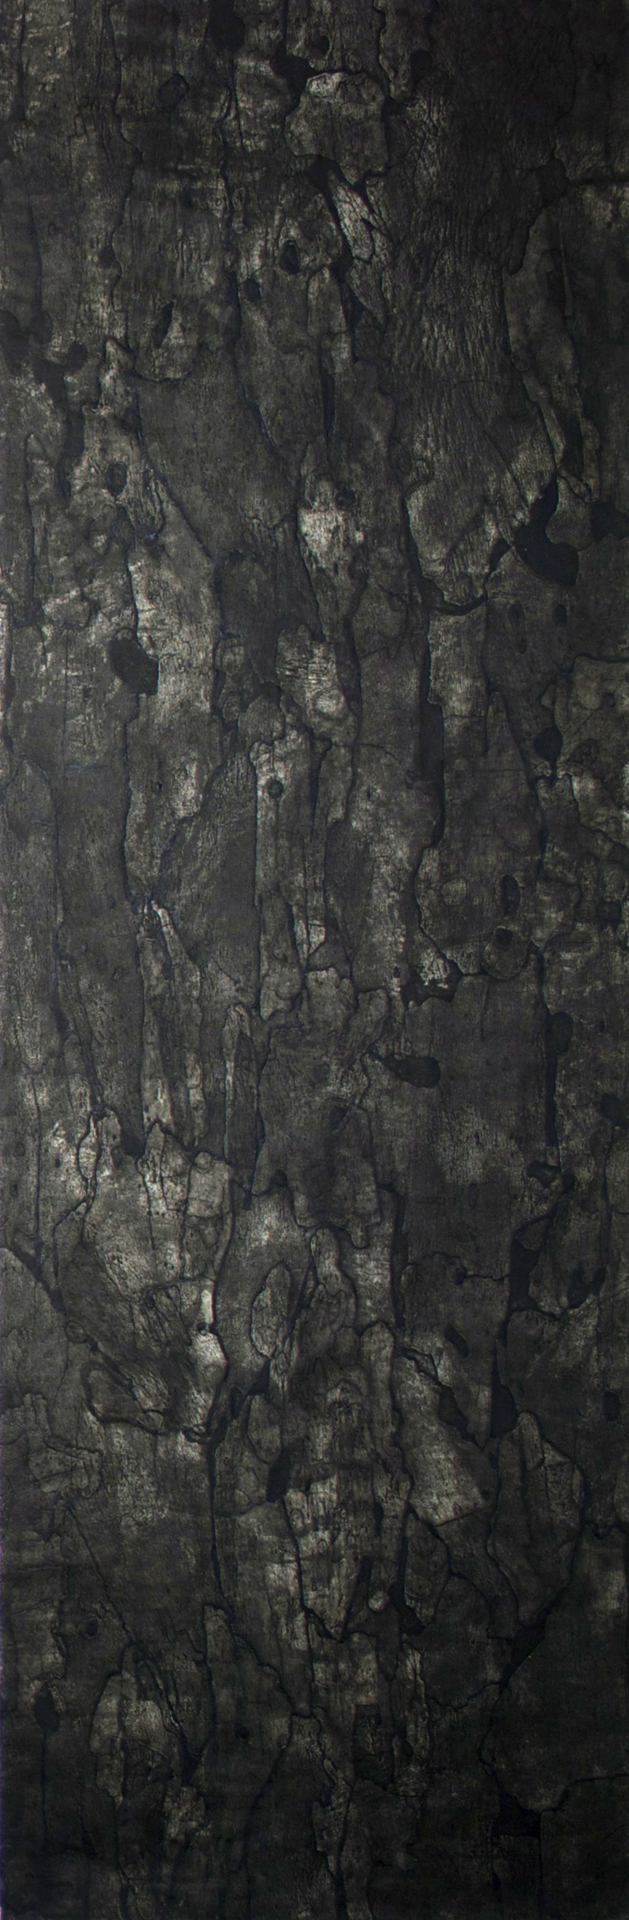 "Sycamore IV – 70"" x 23"" Bark Intaglio and Rust Monoprints on Suzuki"